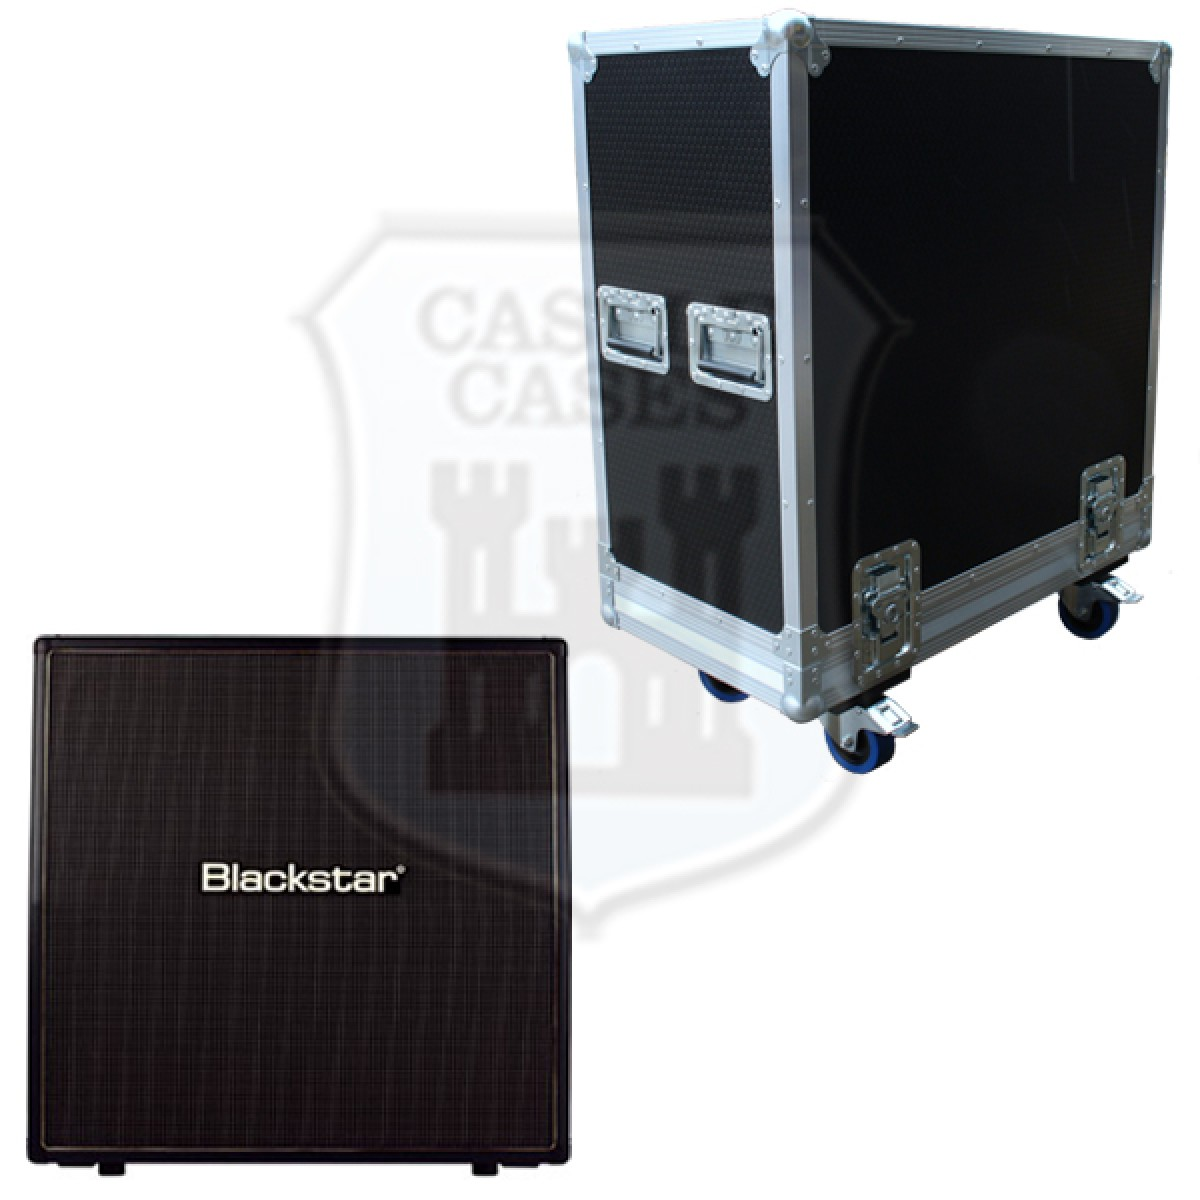 Blackstar HTV-412 Flightcase